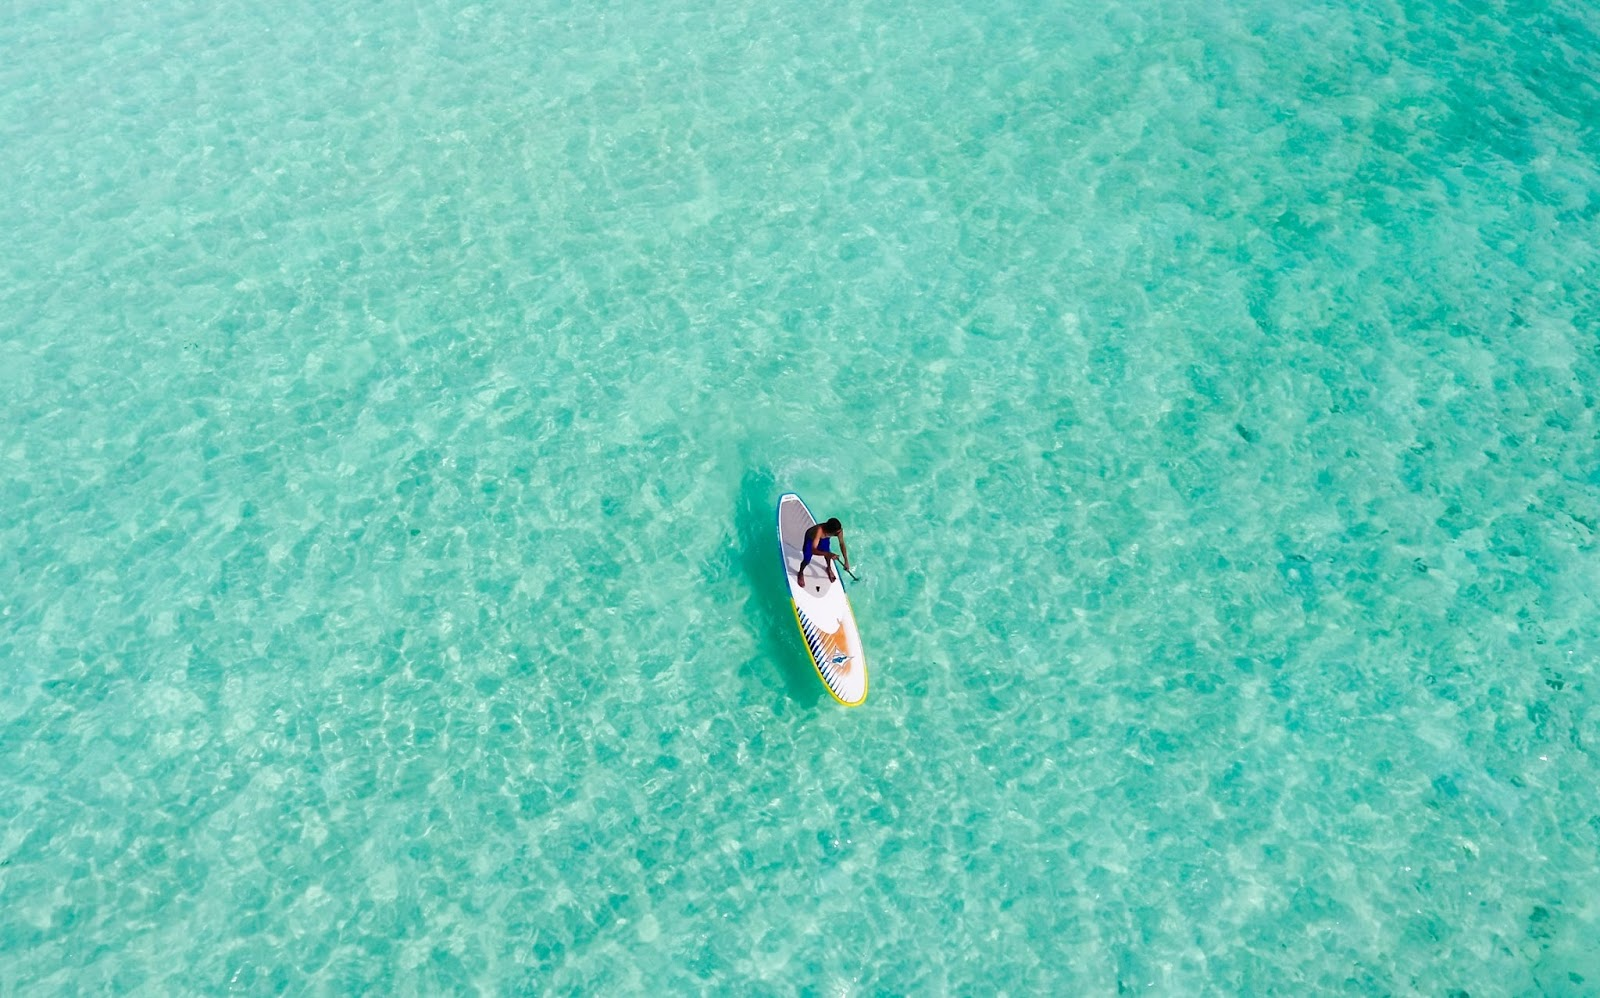 Stand up paddleboarding in Bali